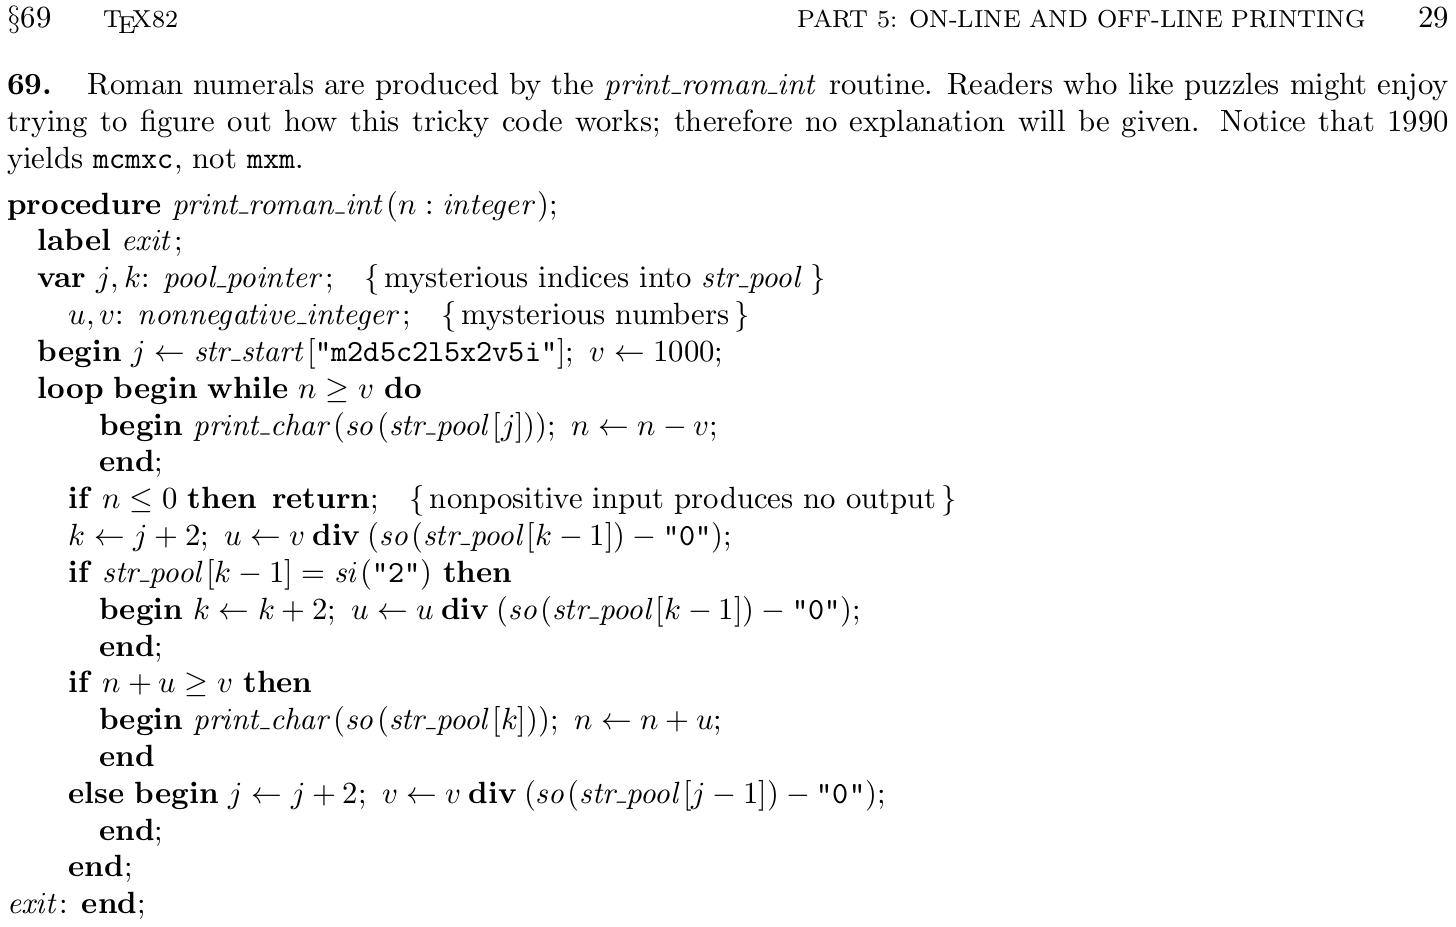 Knuths Print_roman_int Function In Tex82